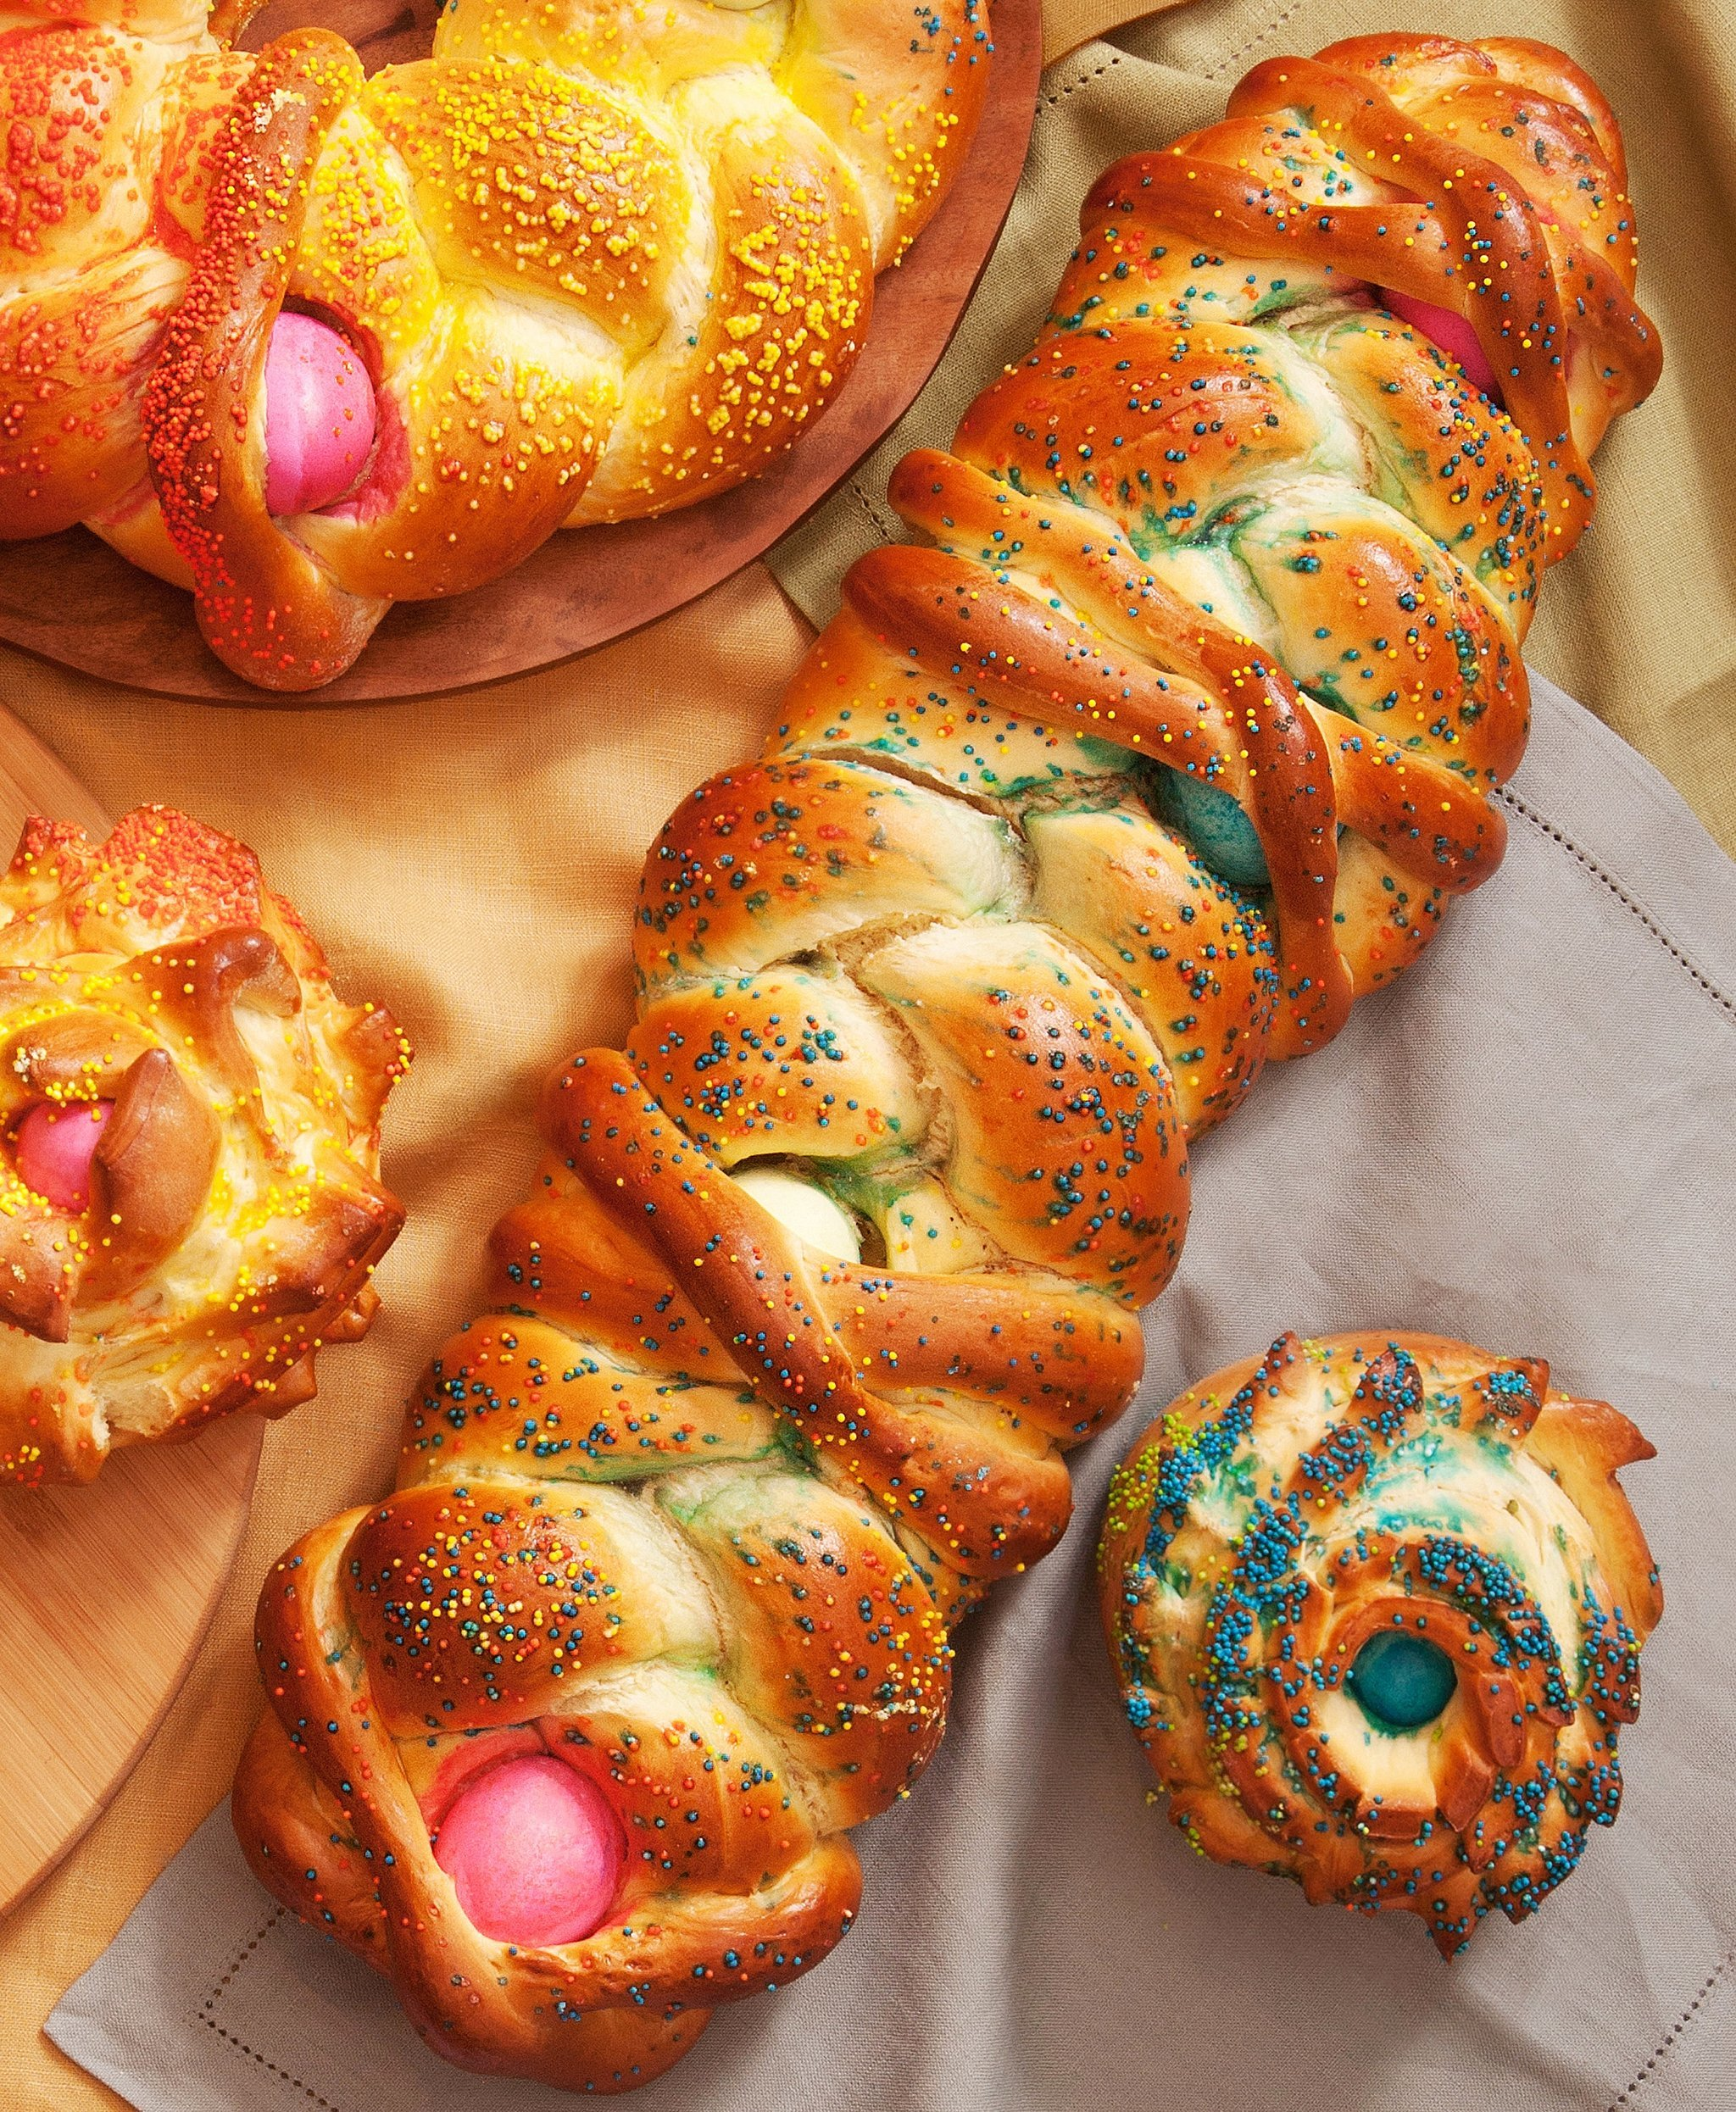 Easter Bread With Colored Eggs | POPSUGAR Food